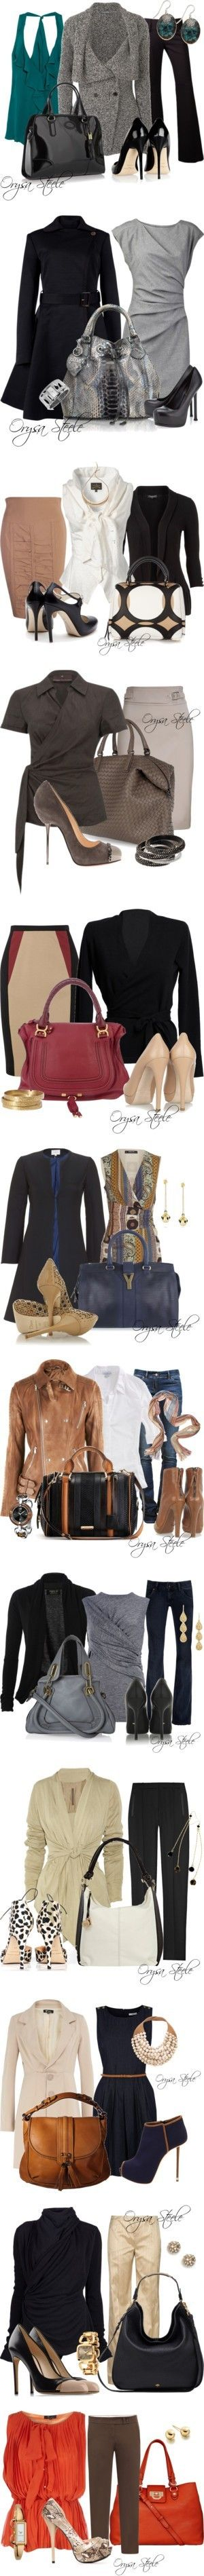 in style @ work - Click image to find more Women's Fashion Pinterest pins - Chic Fashion Pins : The Cutest Pins Around!!!